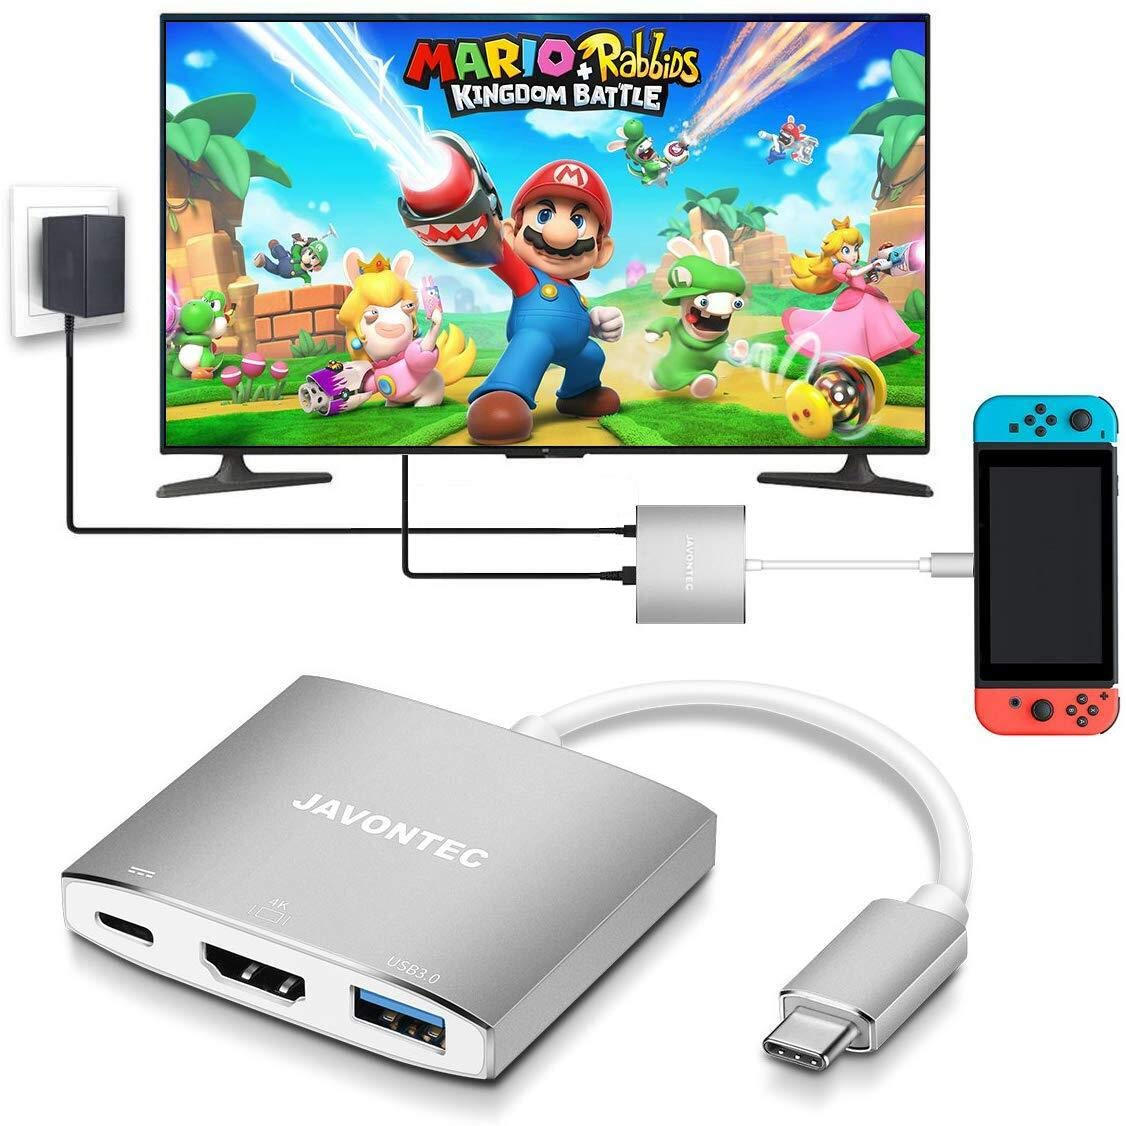 USB C to HDMI Hub Dock for Nintendo Switch, JAVONTEC USB Type C HDMI Adapter Converter with 4K HDMI, USB 3.0, Power…